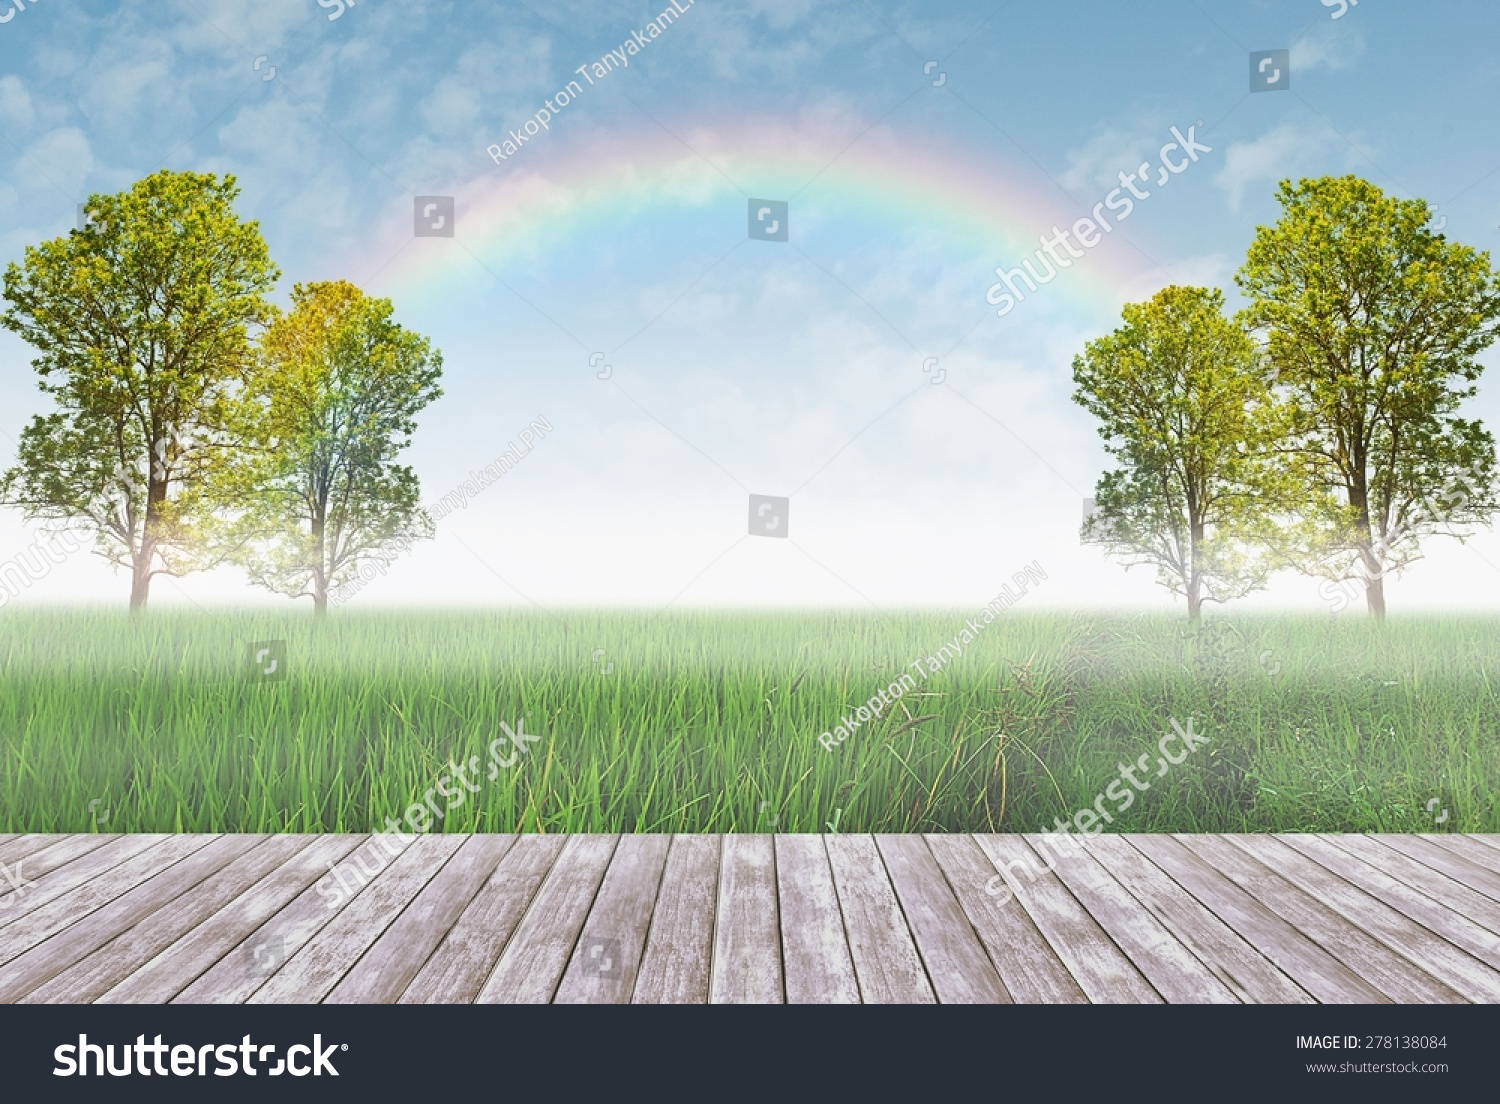 Wood terrace trees green field on stock photo 278138084 for Terrace trees